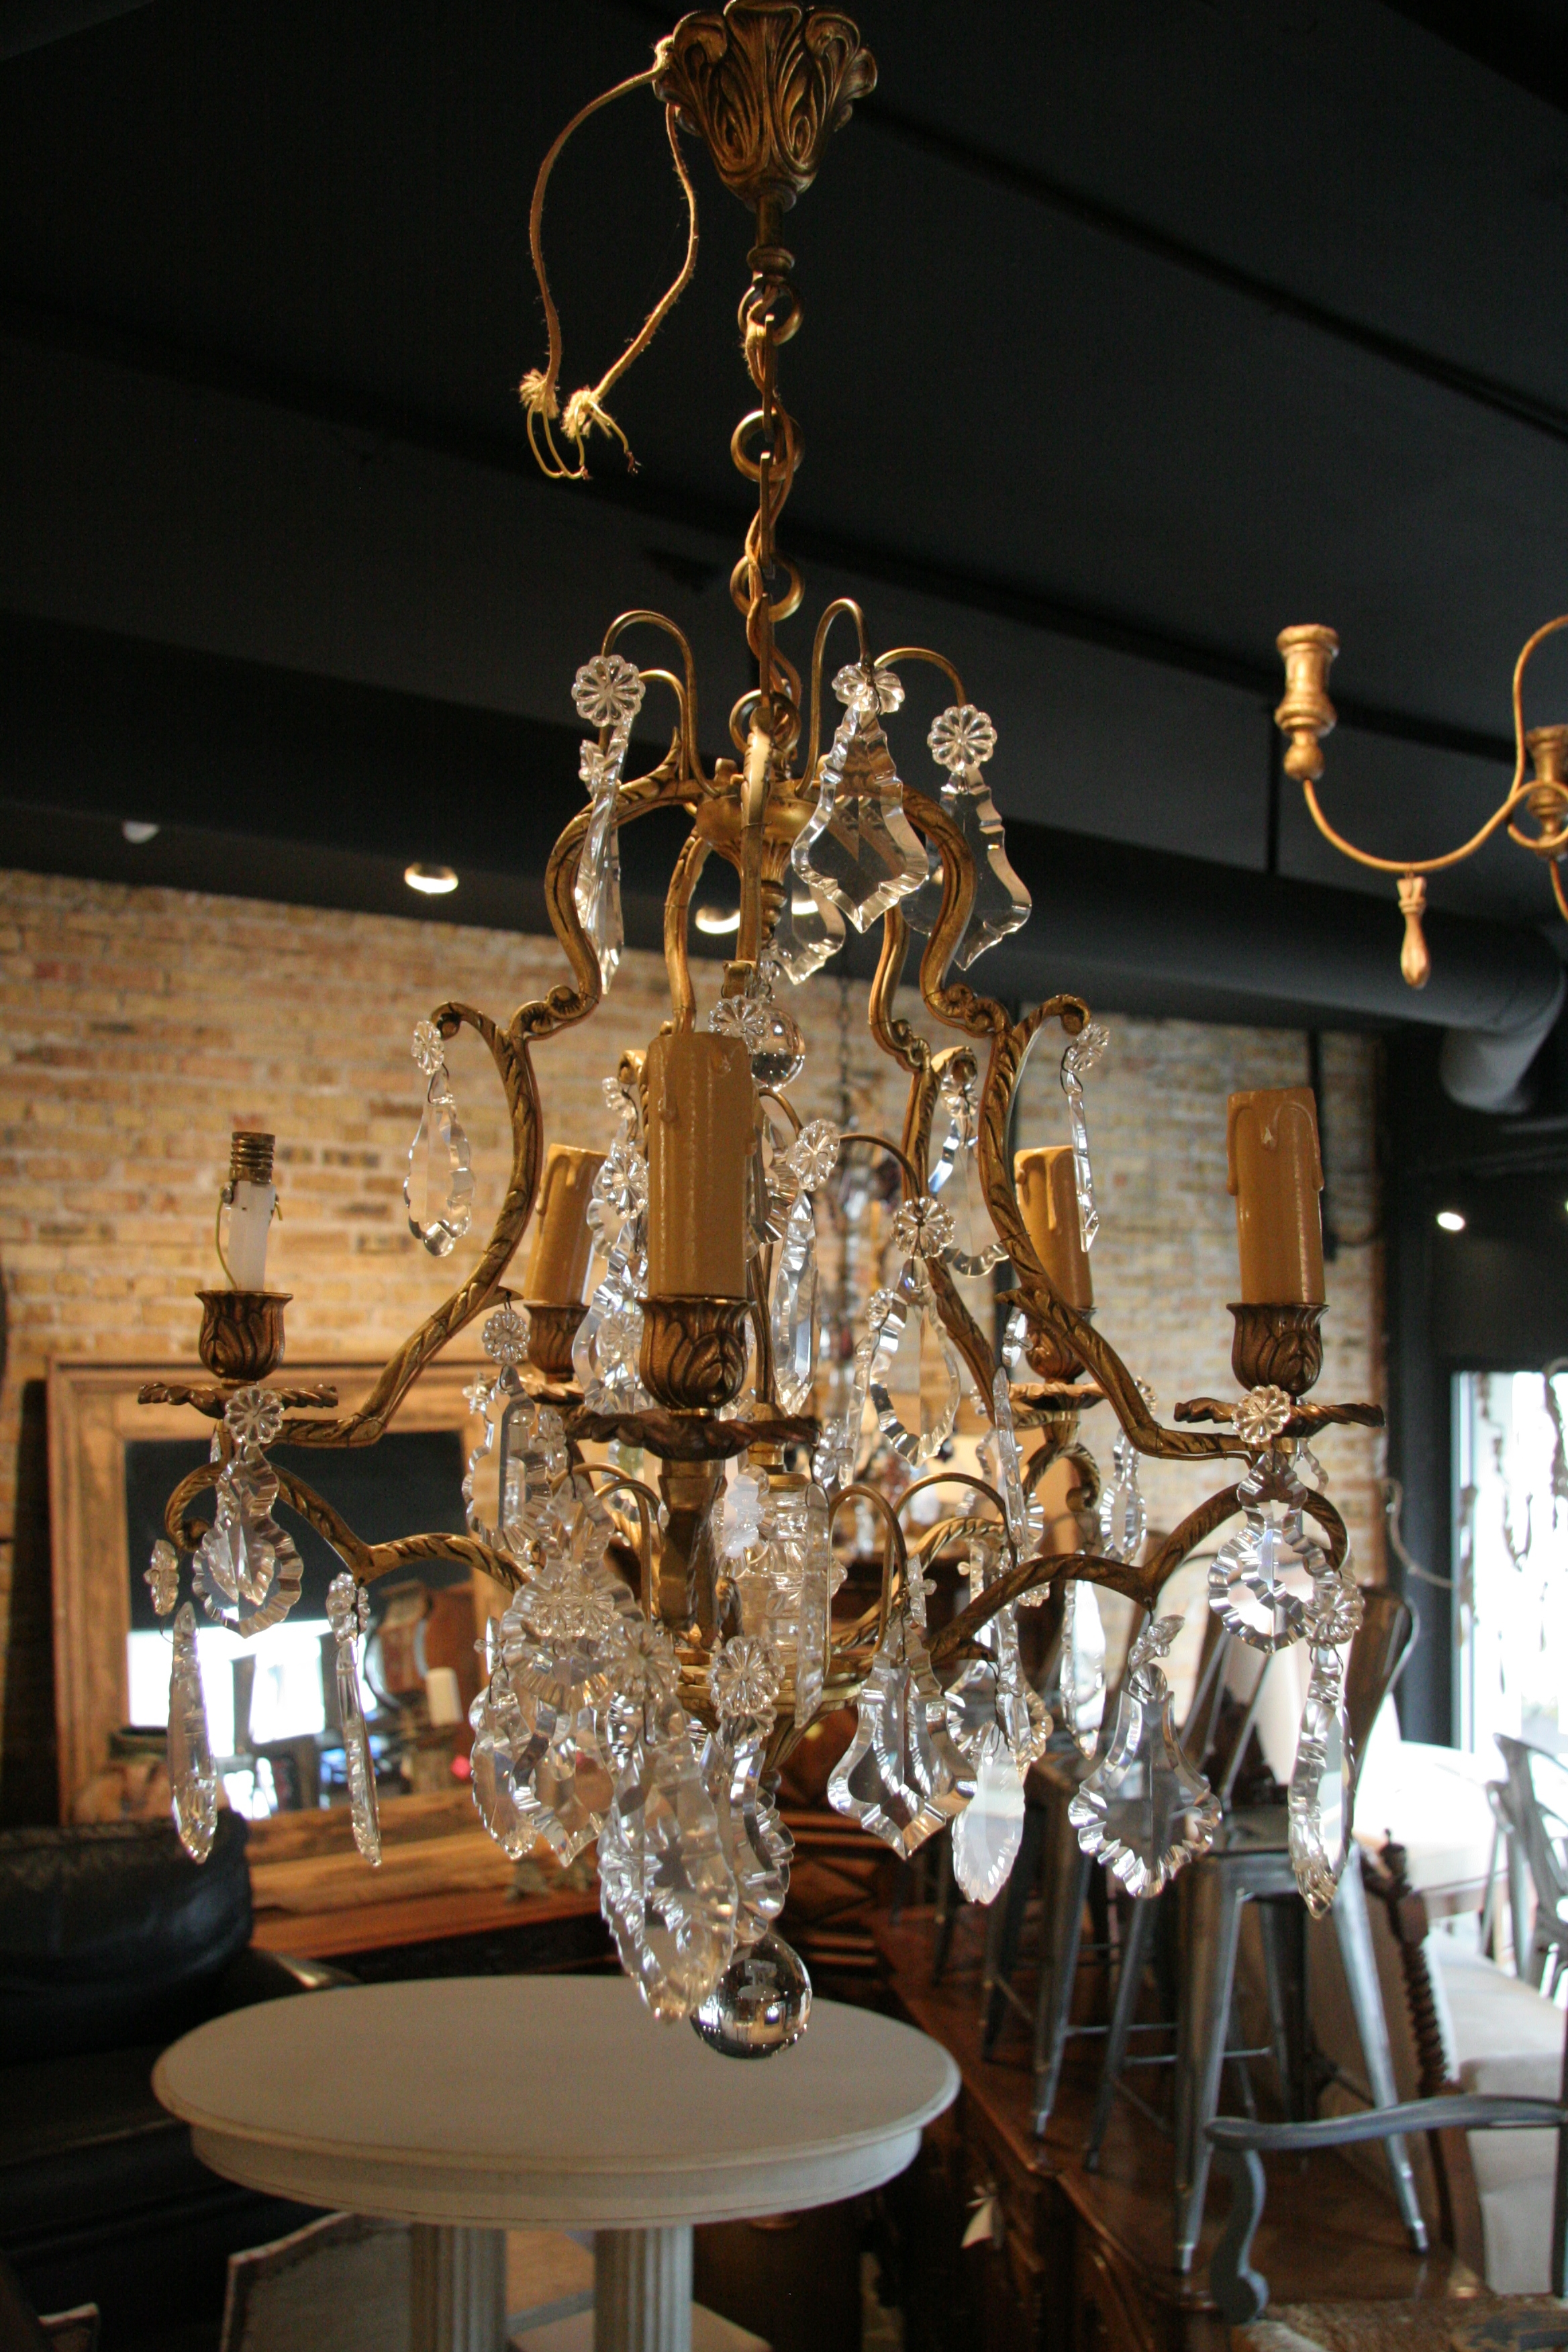 Antique French 5 Light Brass And Crystal Chandelier Intended For Brass And Crystal Chandeliers (Image 1 of 15)